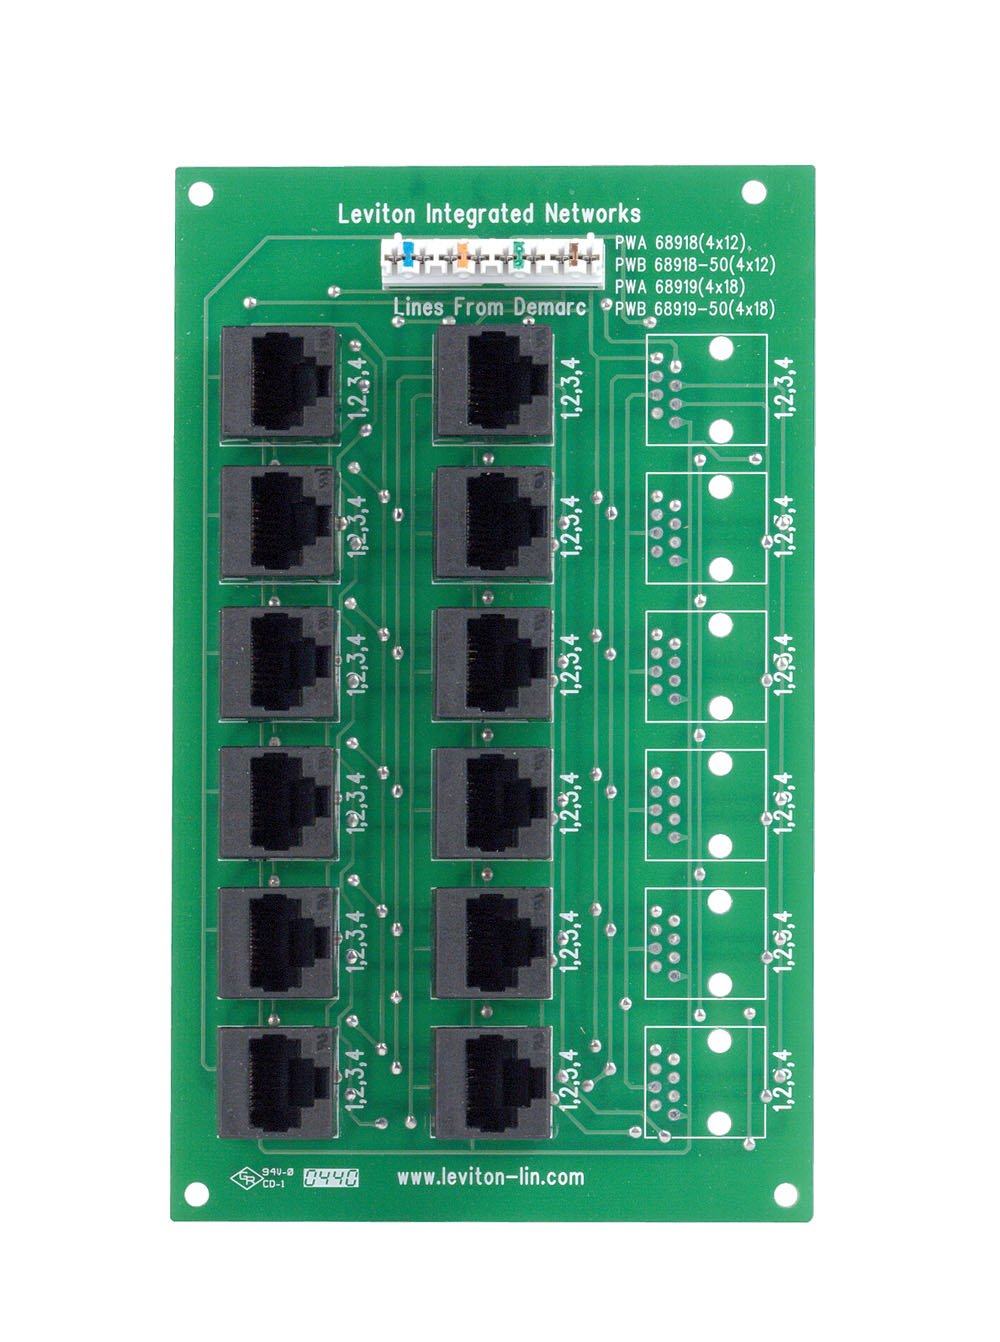 71k3AH2GhmL._SL1342_ amazon com leviton 47603 12b 4x12 telephone distribution board  at edmiracle.co